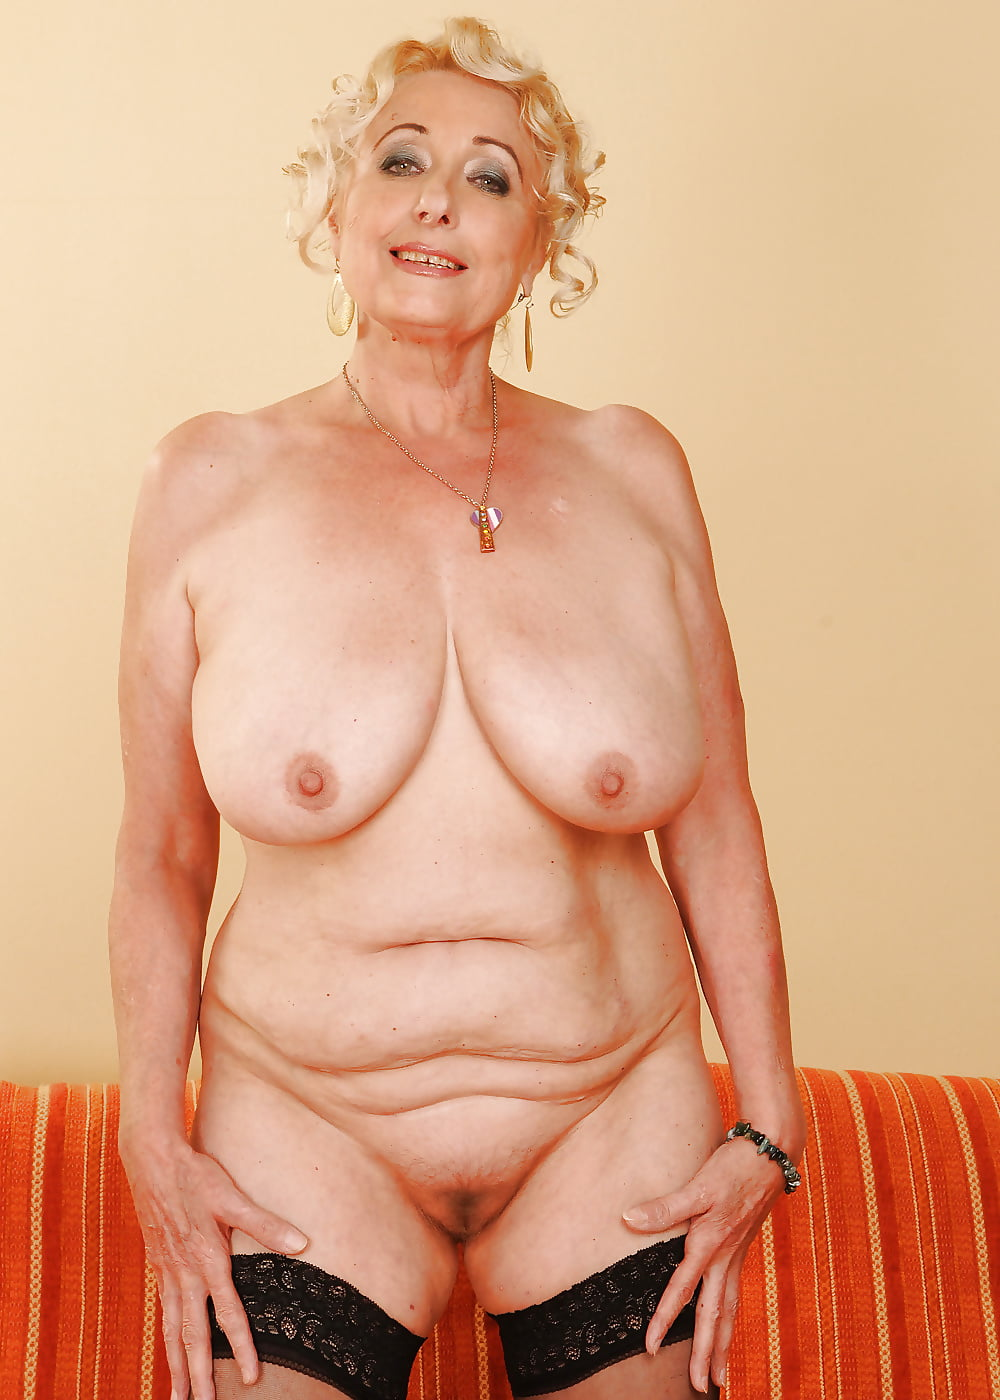 Photos of older nude actresses, free hairy blonde pussy pictures